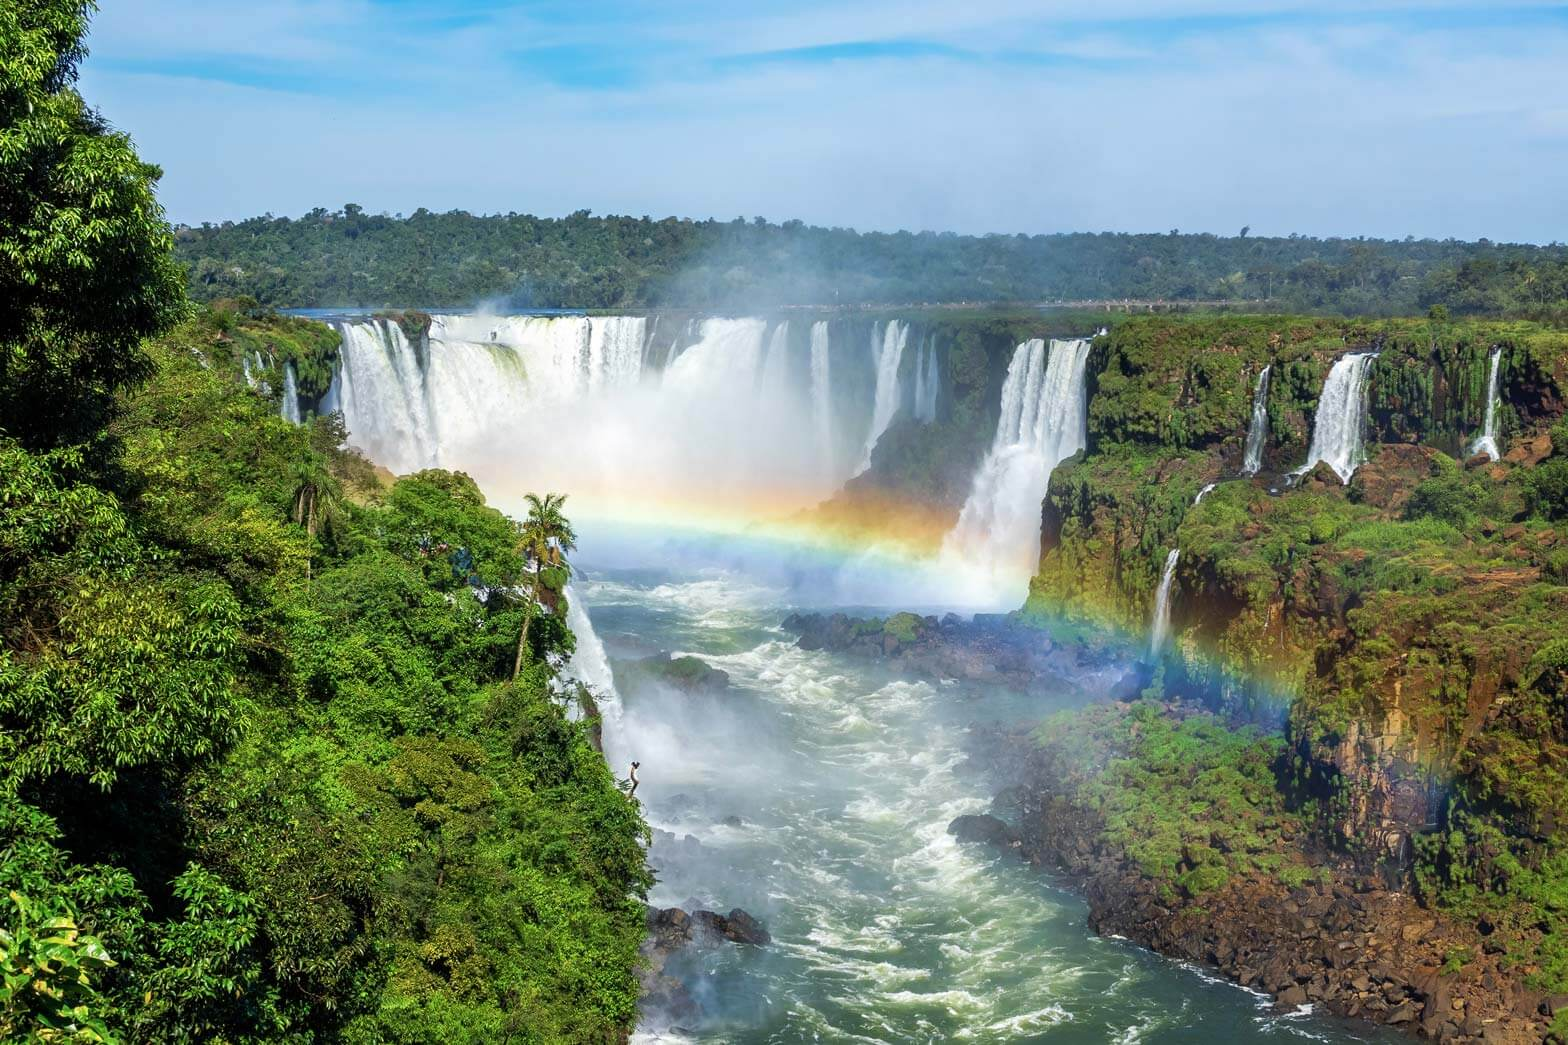 Iguassu waterfalls, view on the Brazilian side